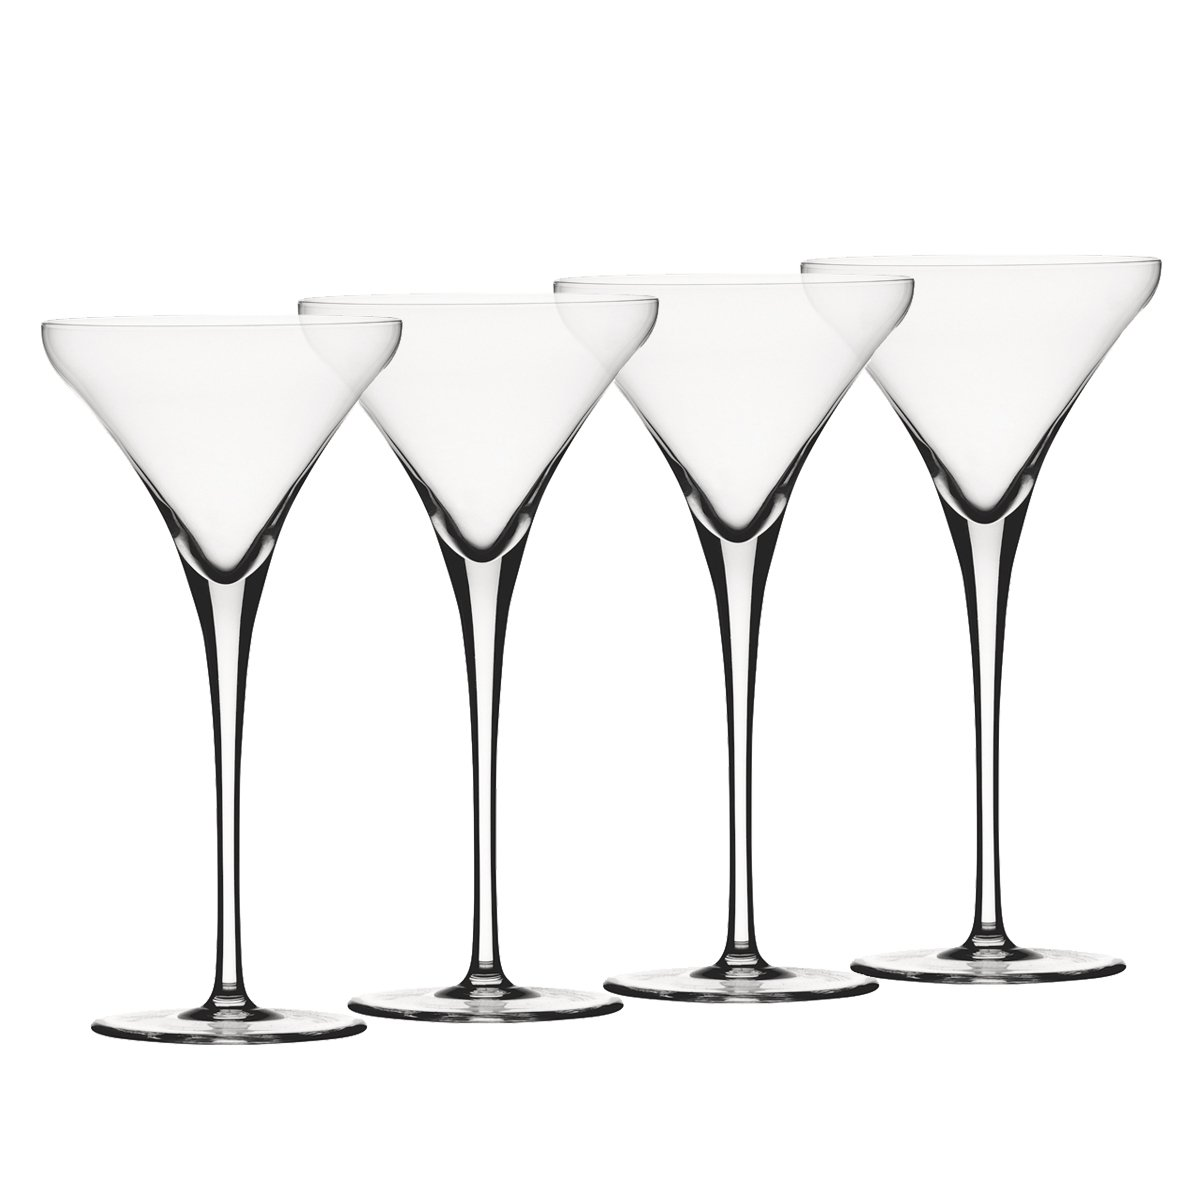 Spiegelau Willsberger Anniversary Martini Glass, Set of 4 Crystal of New York 141 61 50